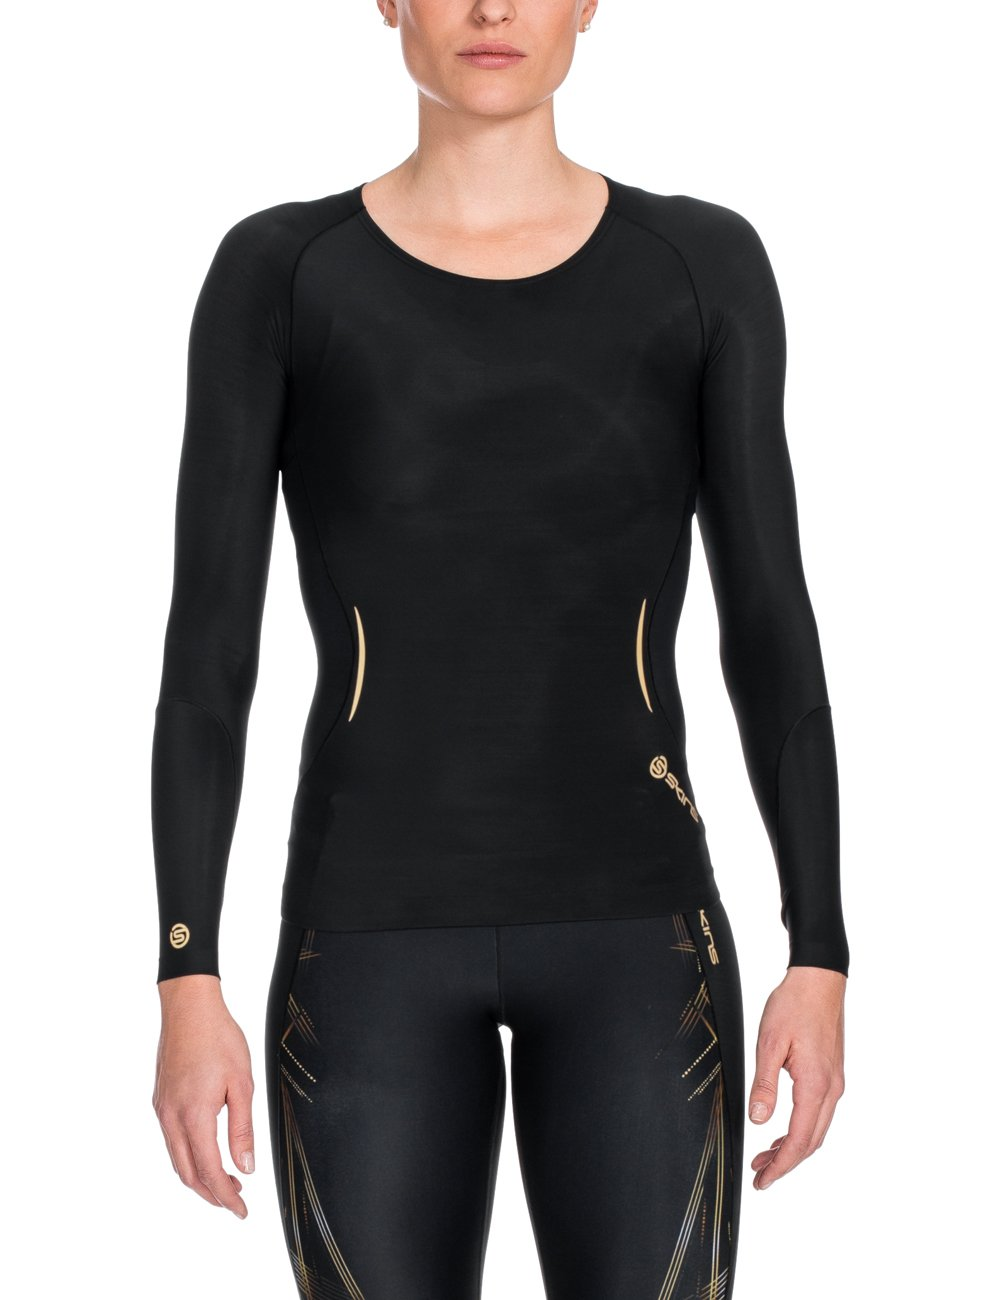 SKINS Women's A400 Long Sleeve Compression Top, Black/Gold, Large